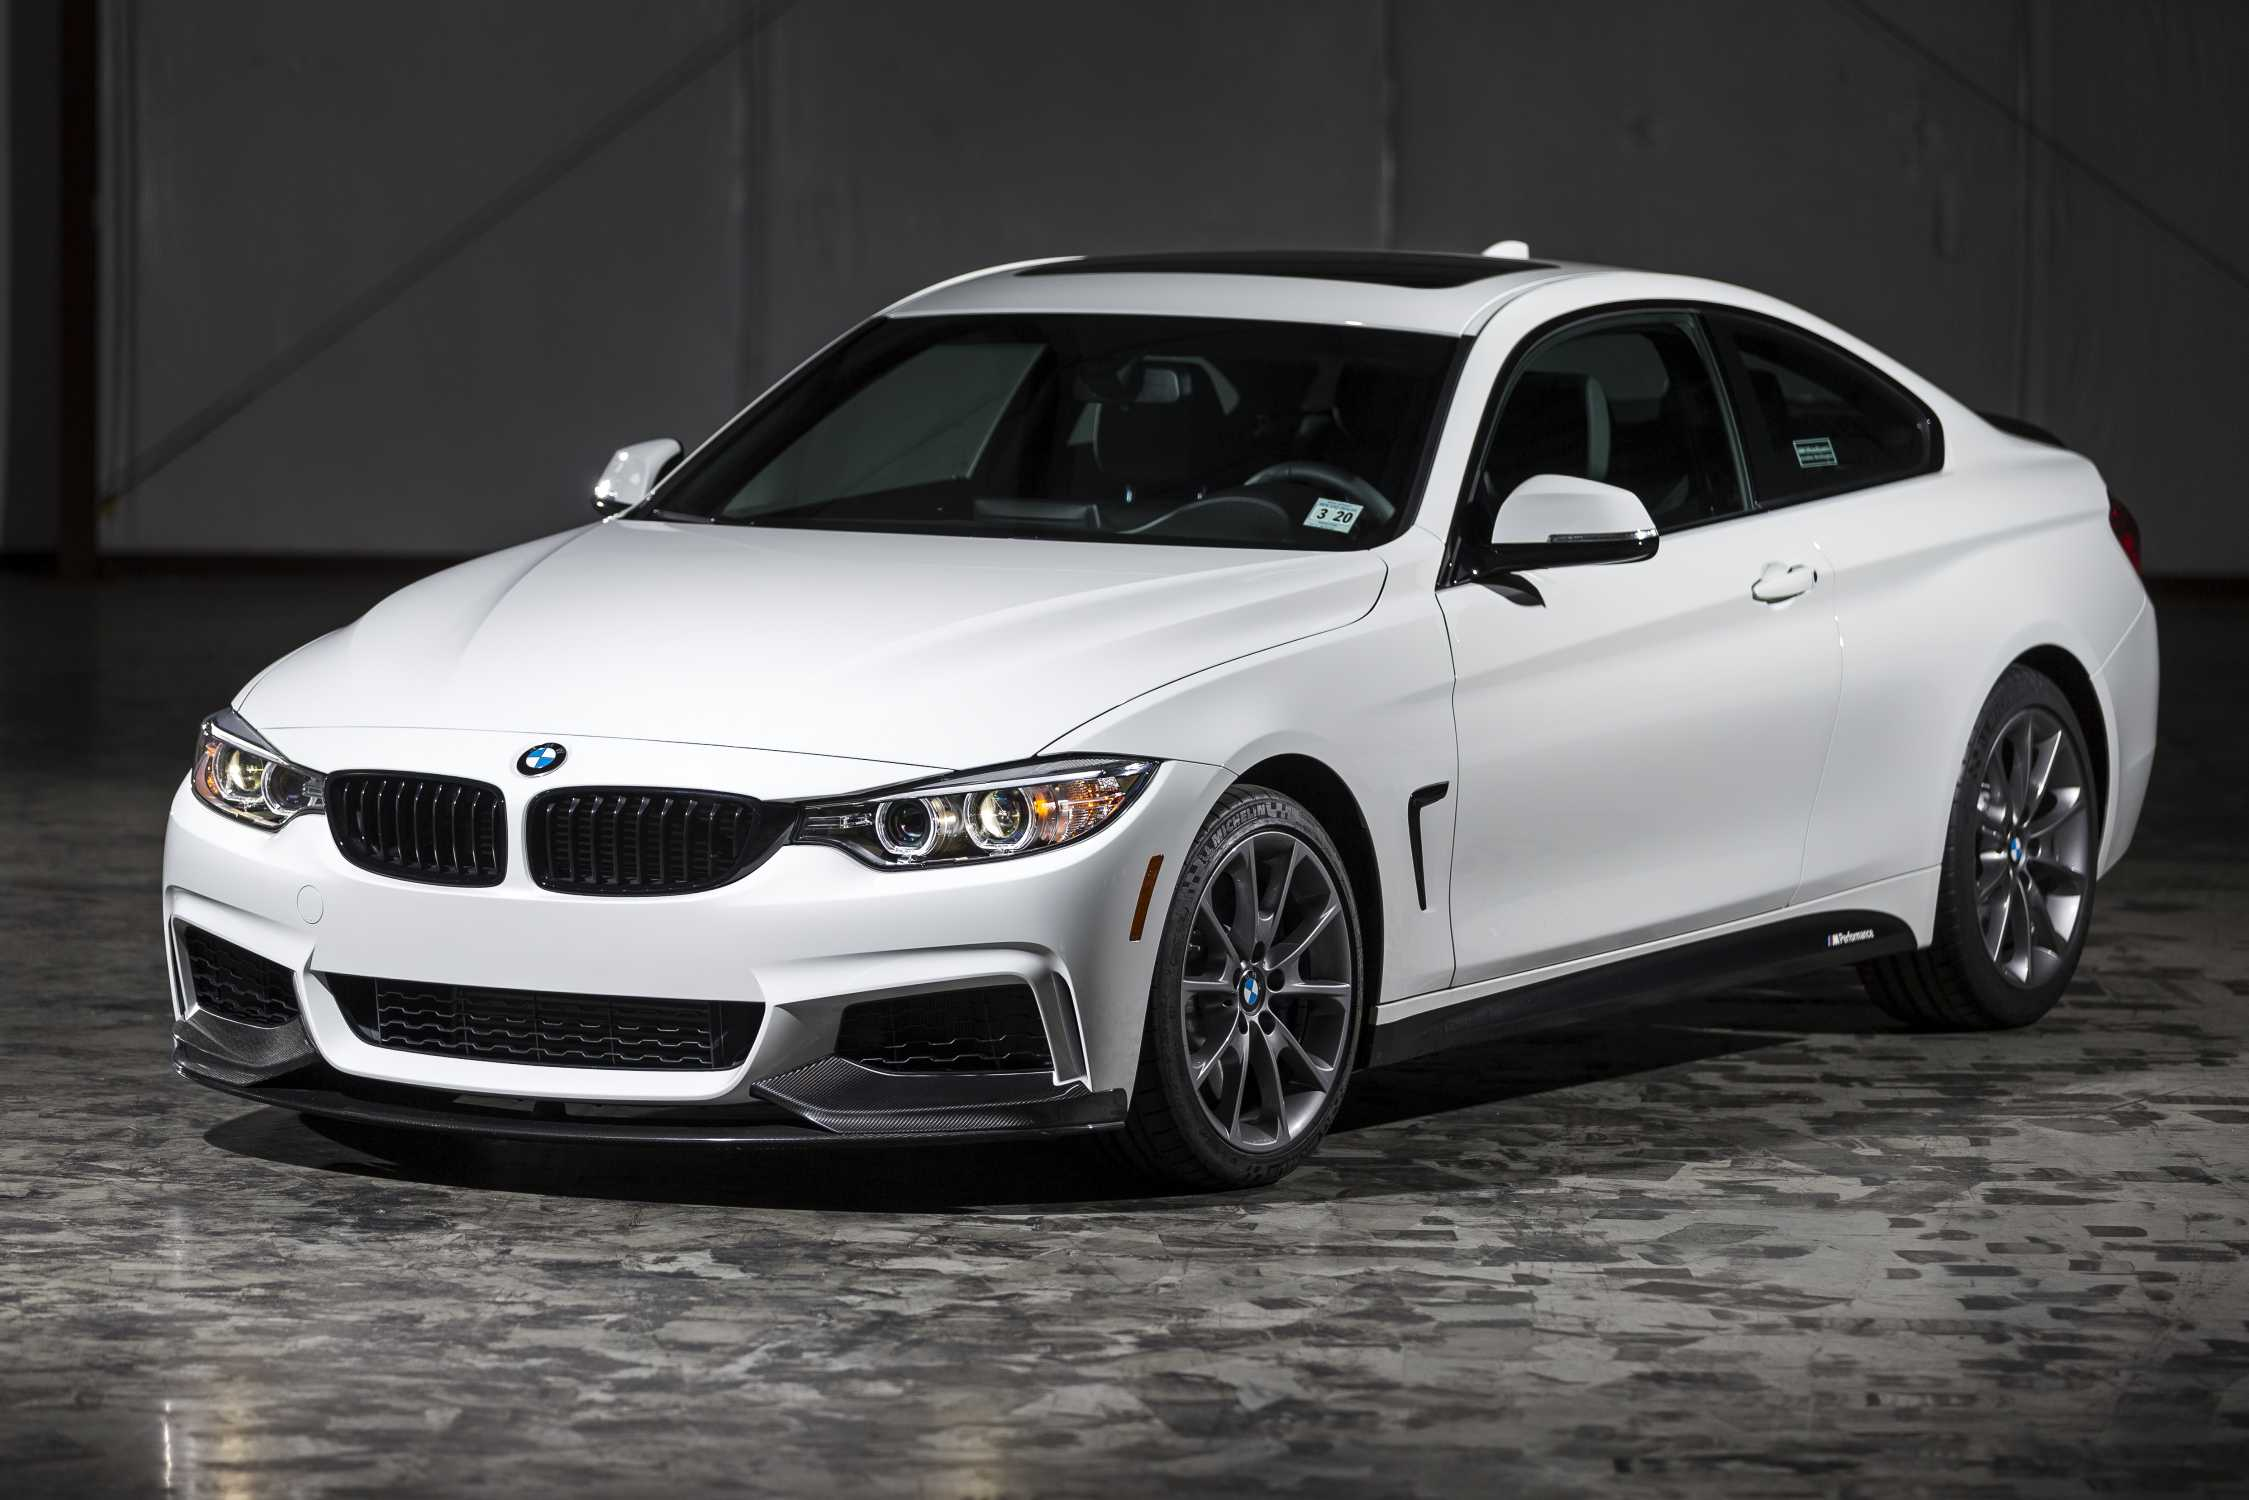 Bmw Unveils The Special Edition 435i Zhp Coupe A Factory Built Performance Vehicle That Truly Defines Ultimate Driving Machine